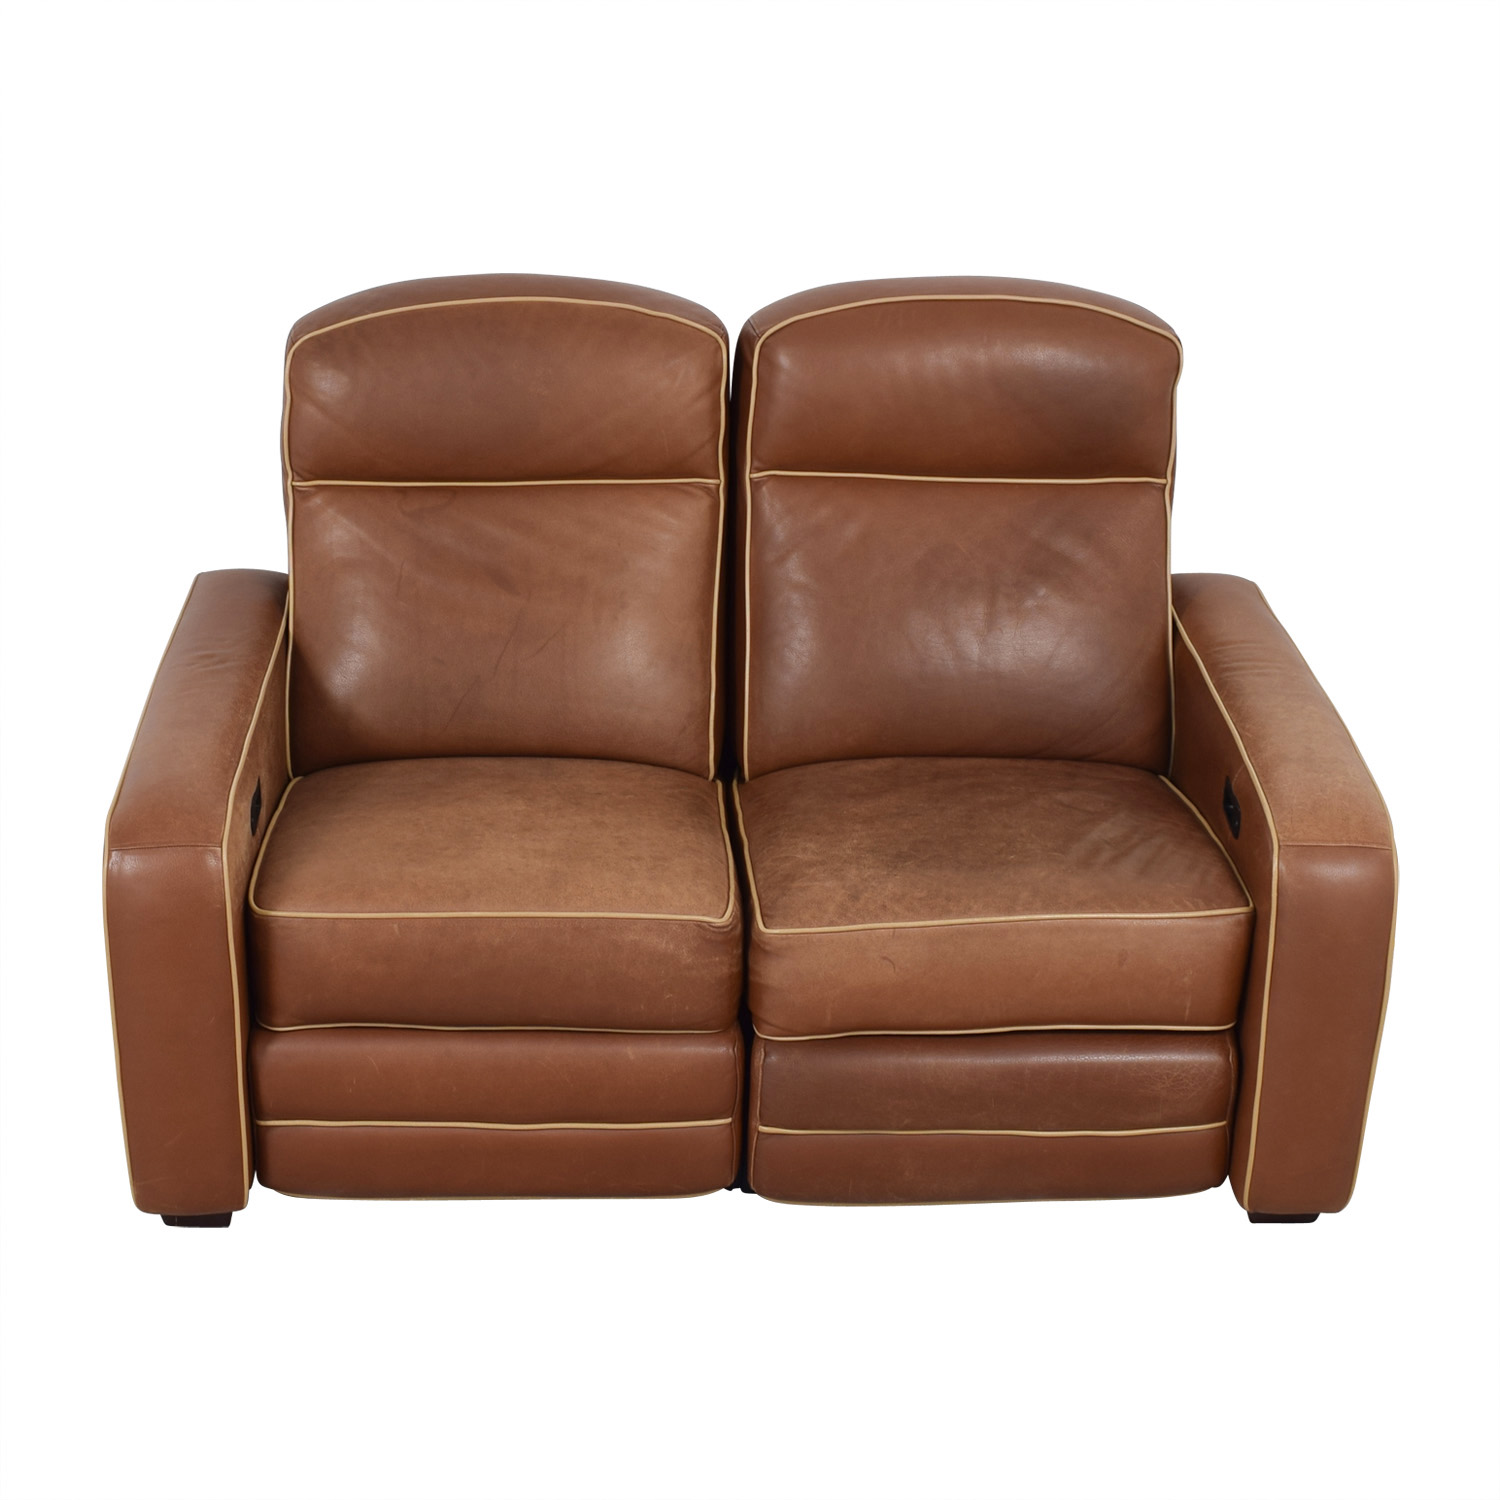 buy Leggett & Platt Custom Brown Loveseat Recliner Leggett & Platt